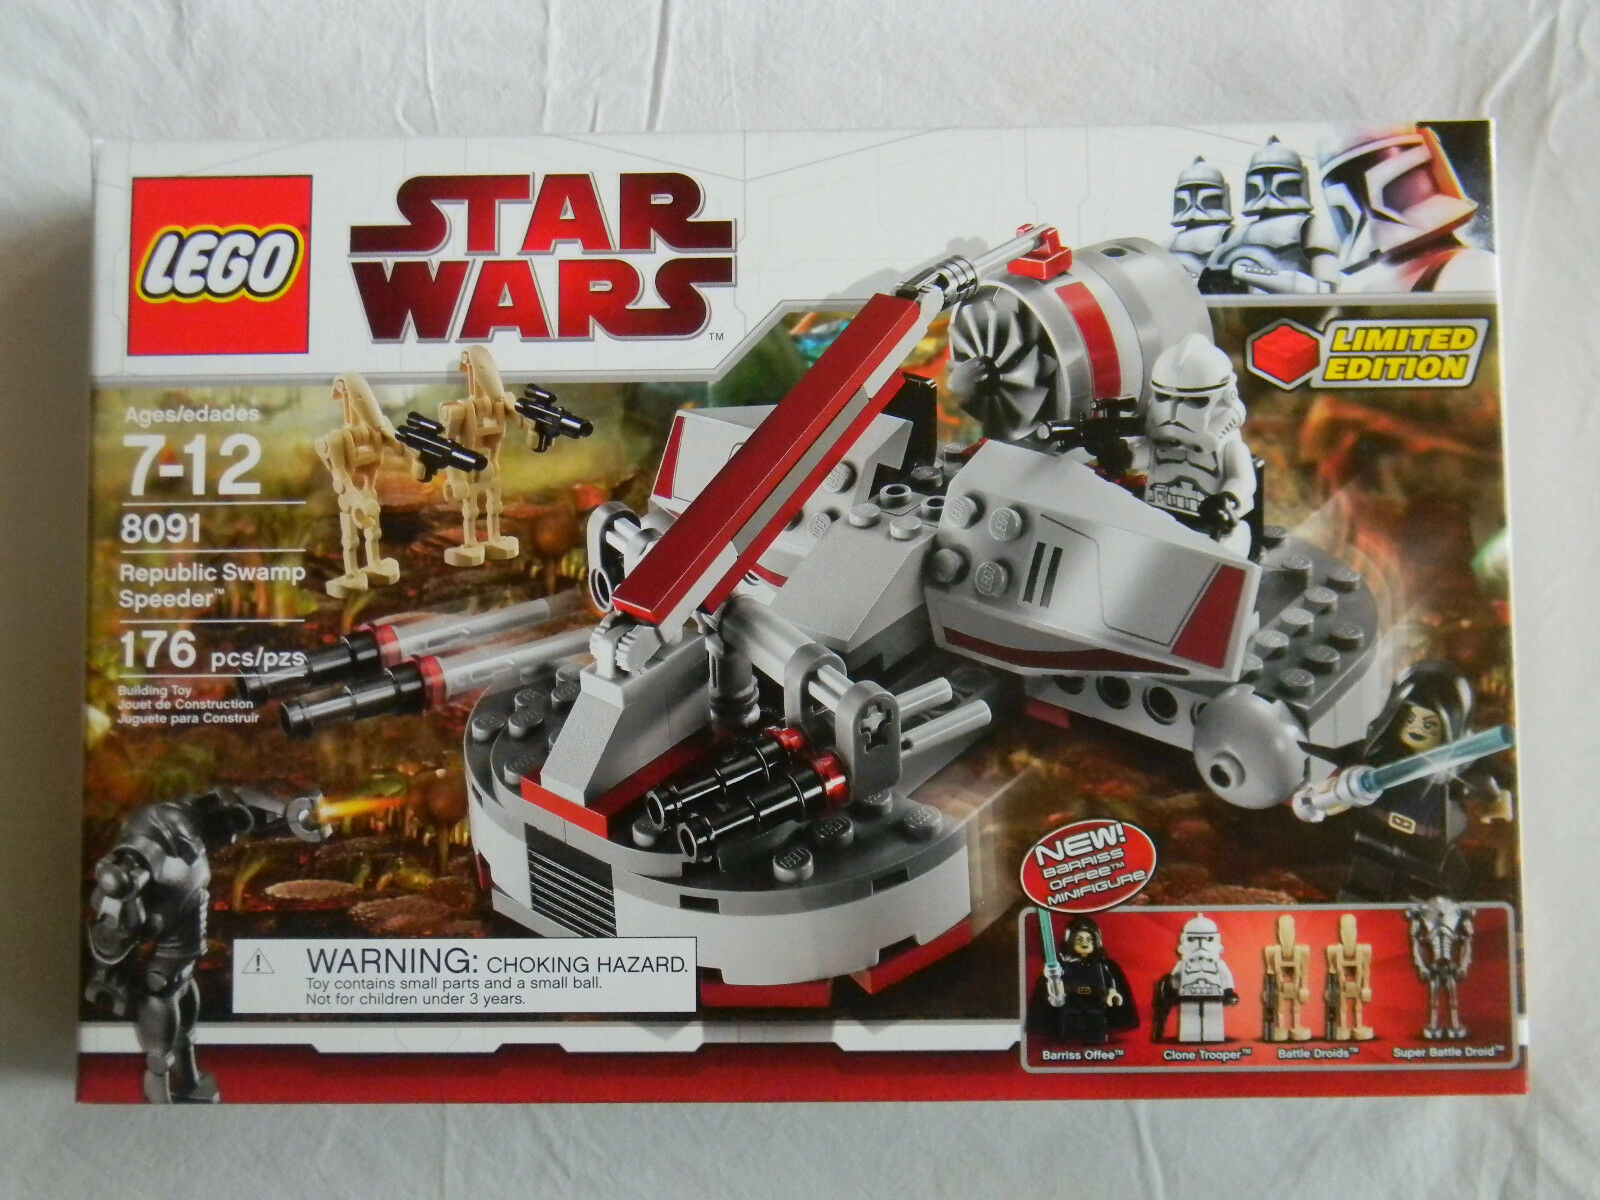 Lego Star Wars 8091 República Swamp Speeder Barriss Offee 2010 Exclusivo Nuevo En Caja